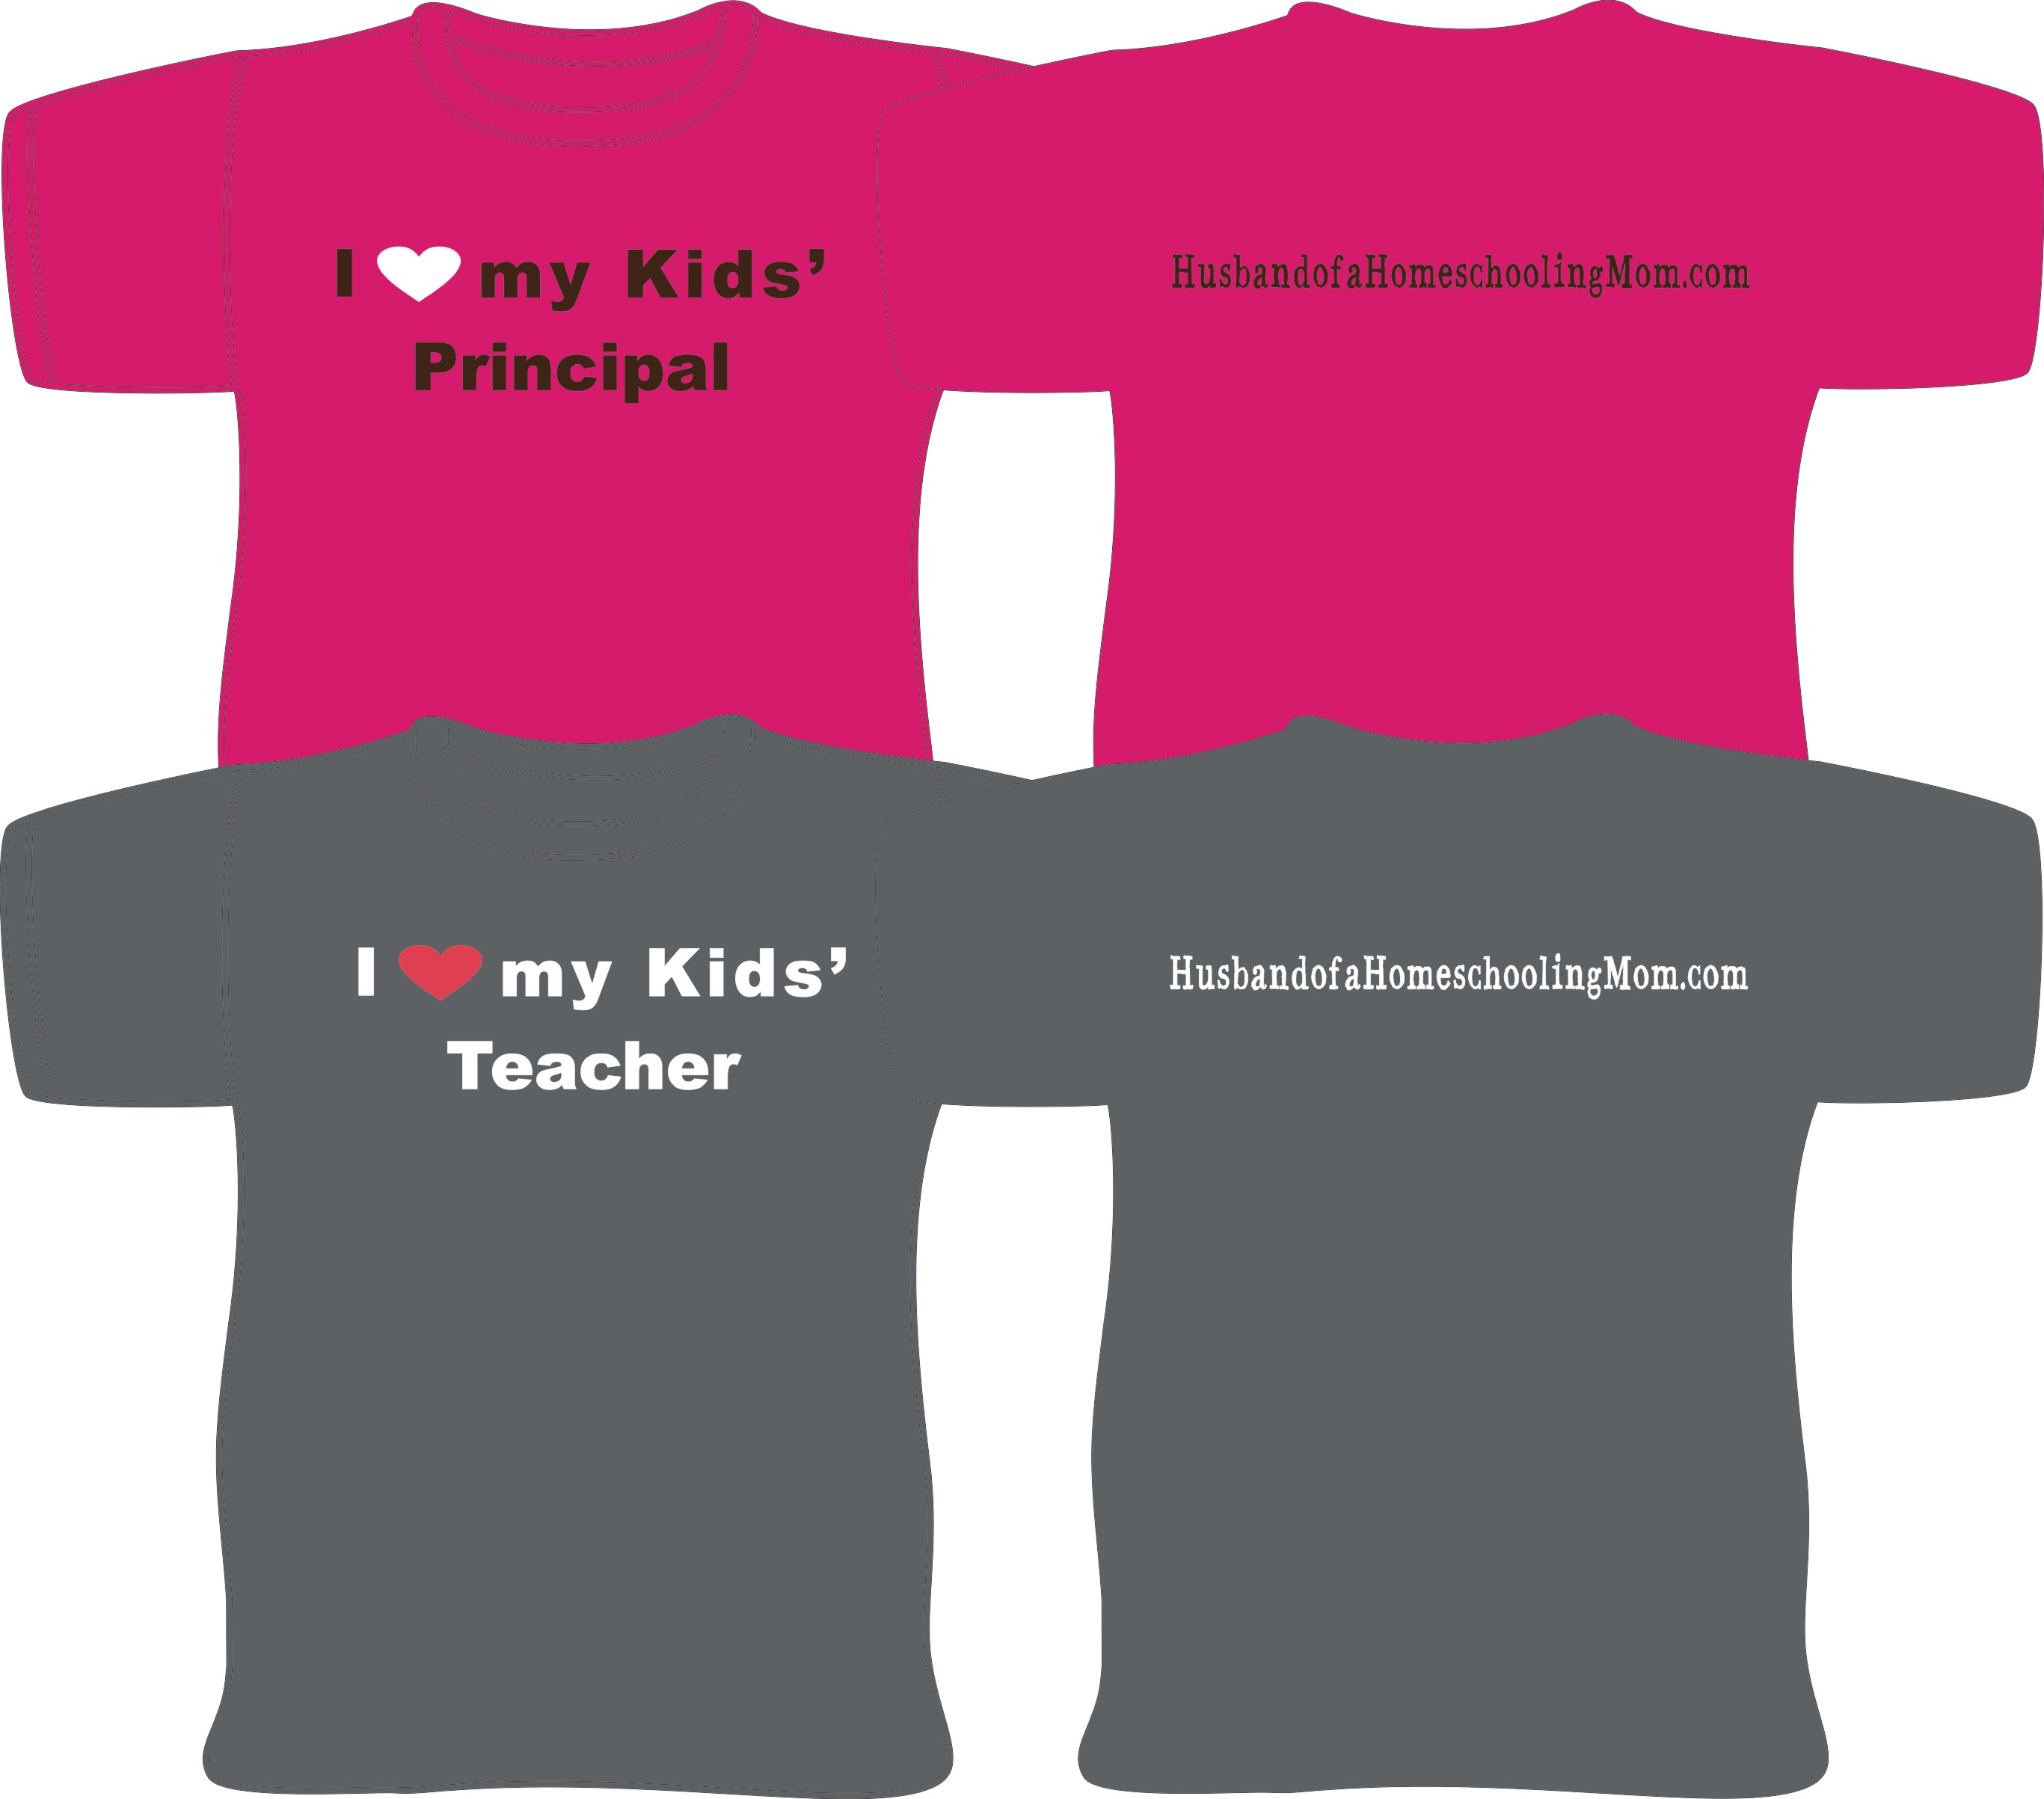 Husband of a Homeschooling Mom T-Shirts